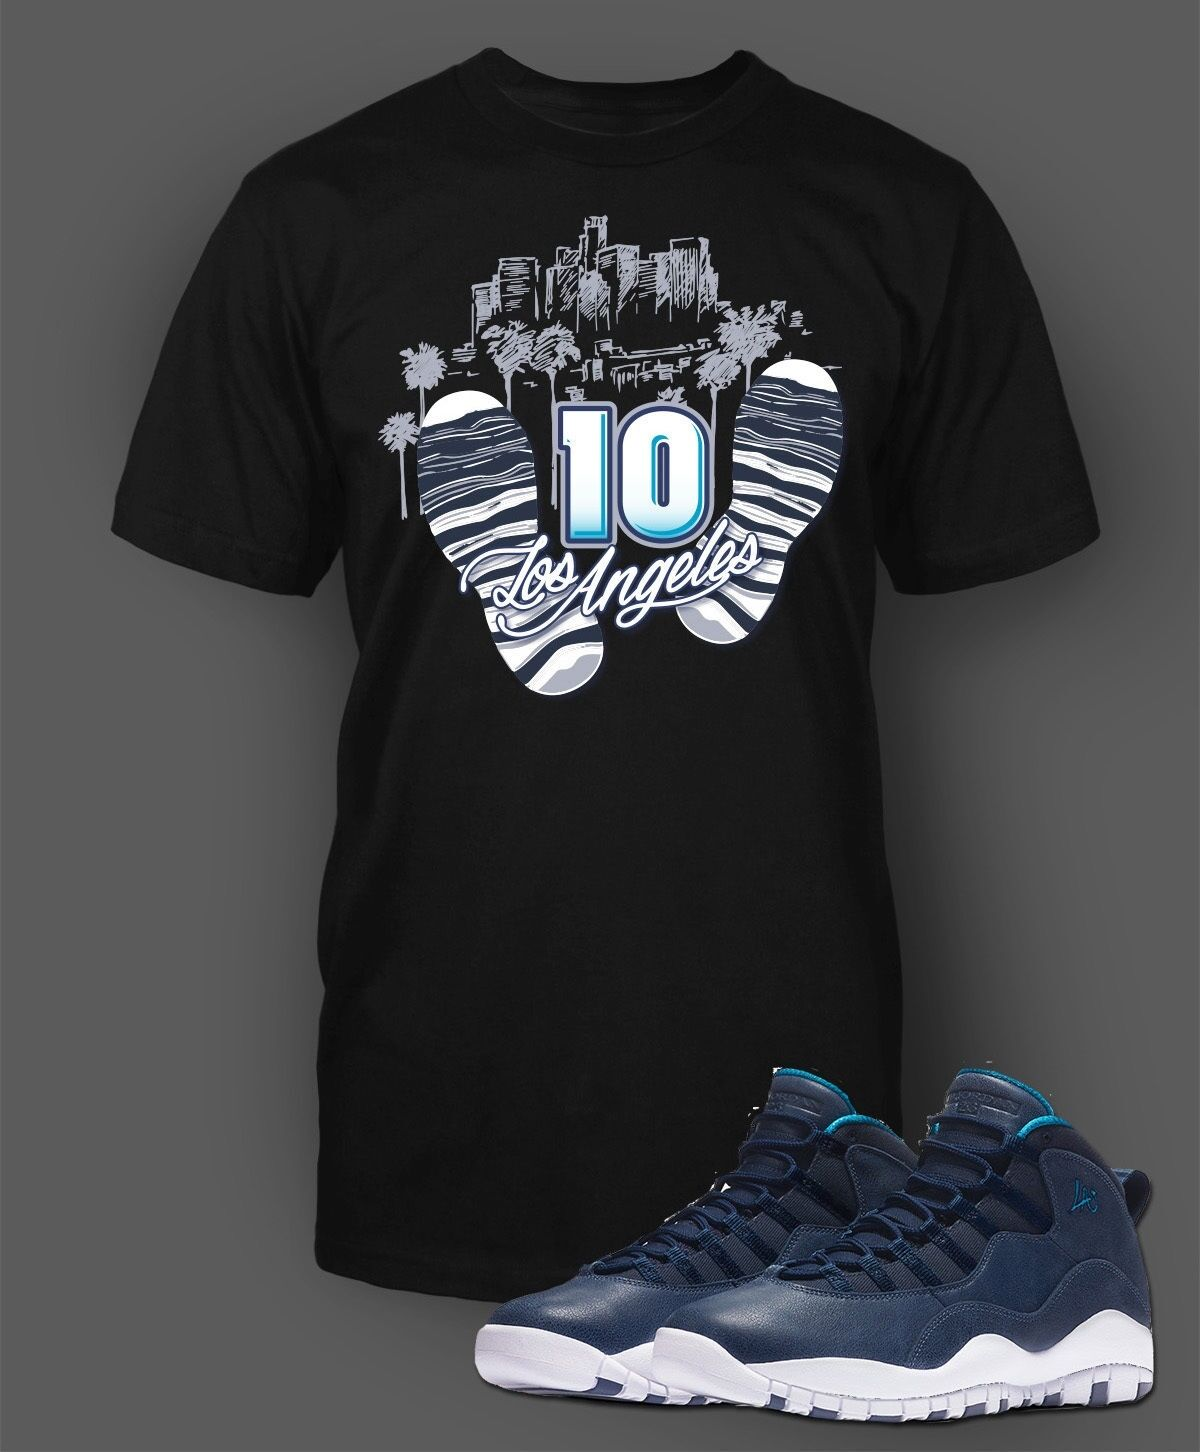 Tee Shirt to Match Air Jordan 10 Los Angeles shoes Men Short Sleeve Pro Club